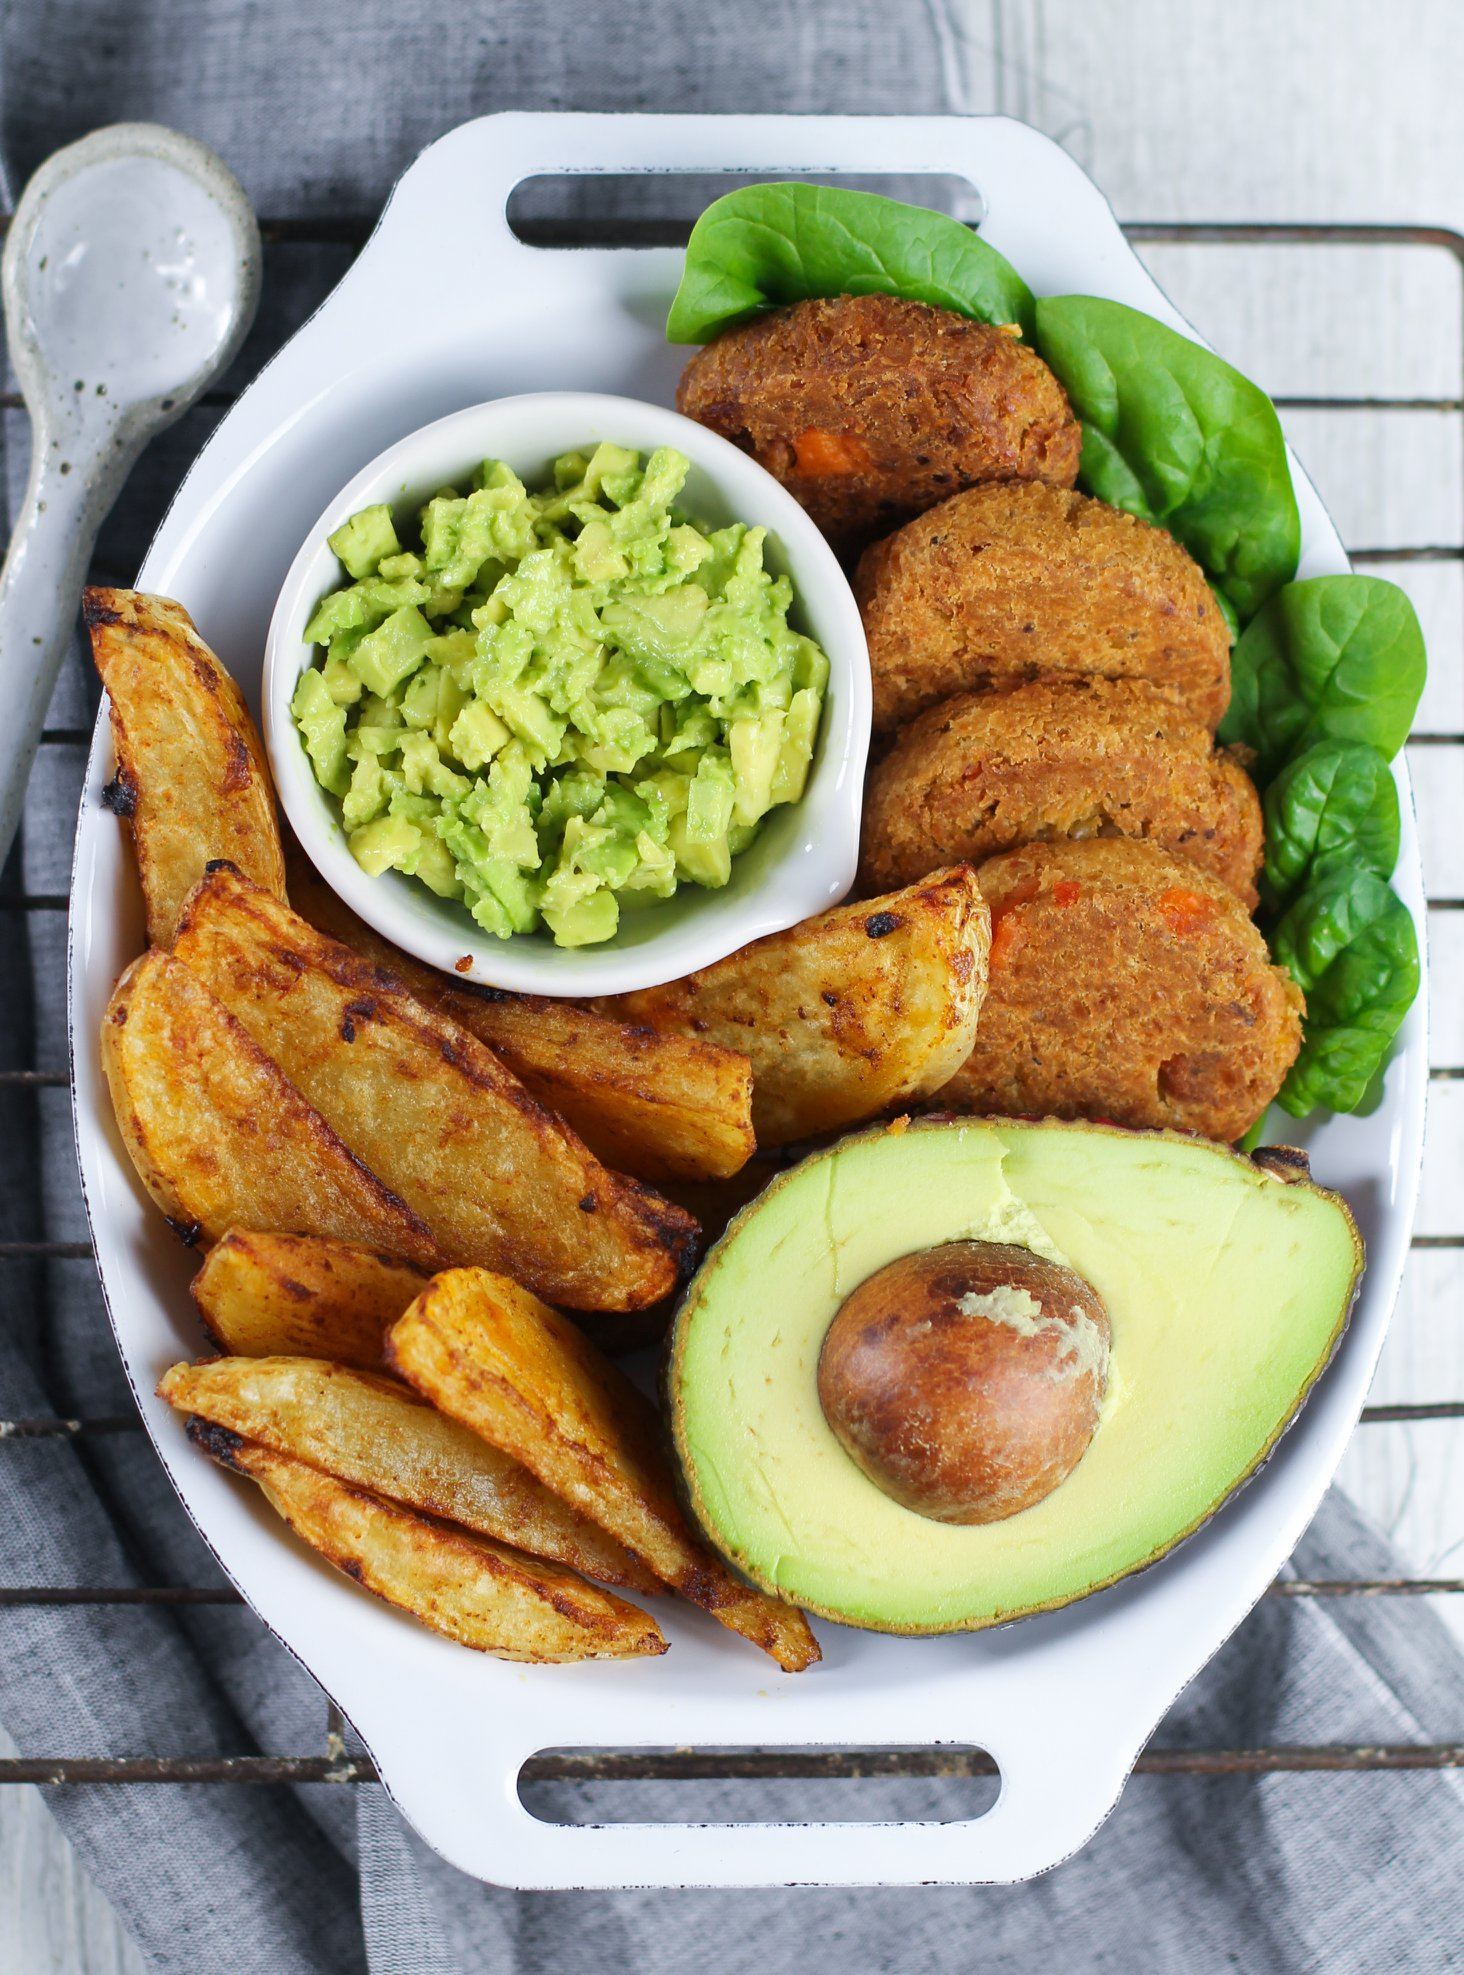 Garlic Wedges with Spicy Quinoa Falafel